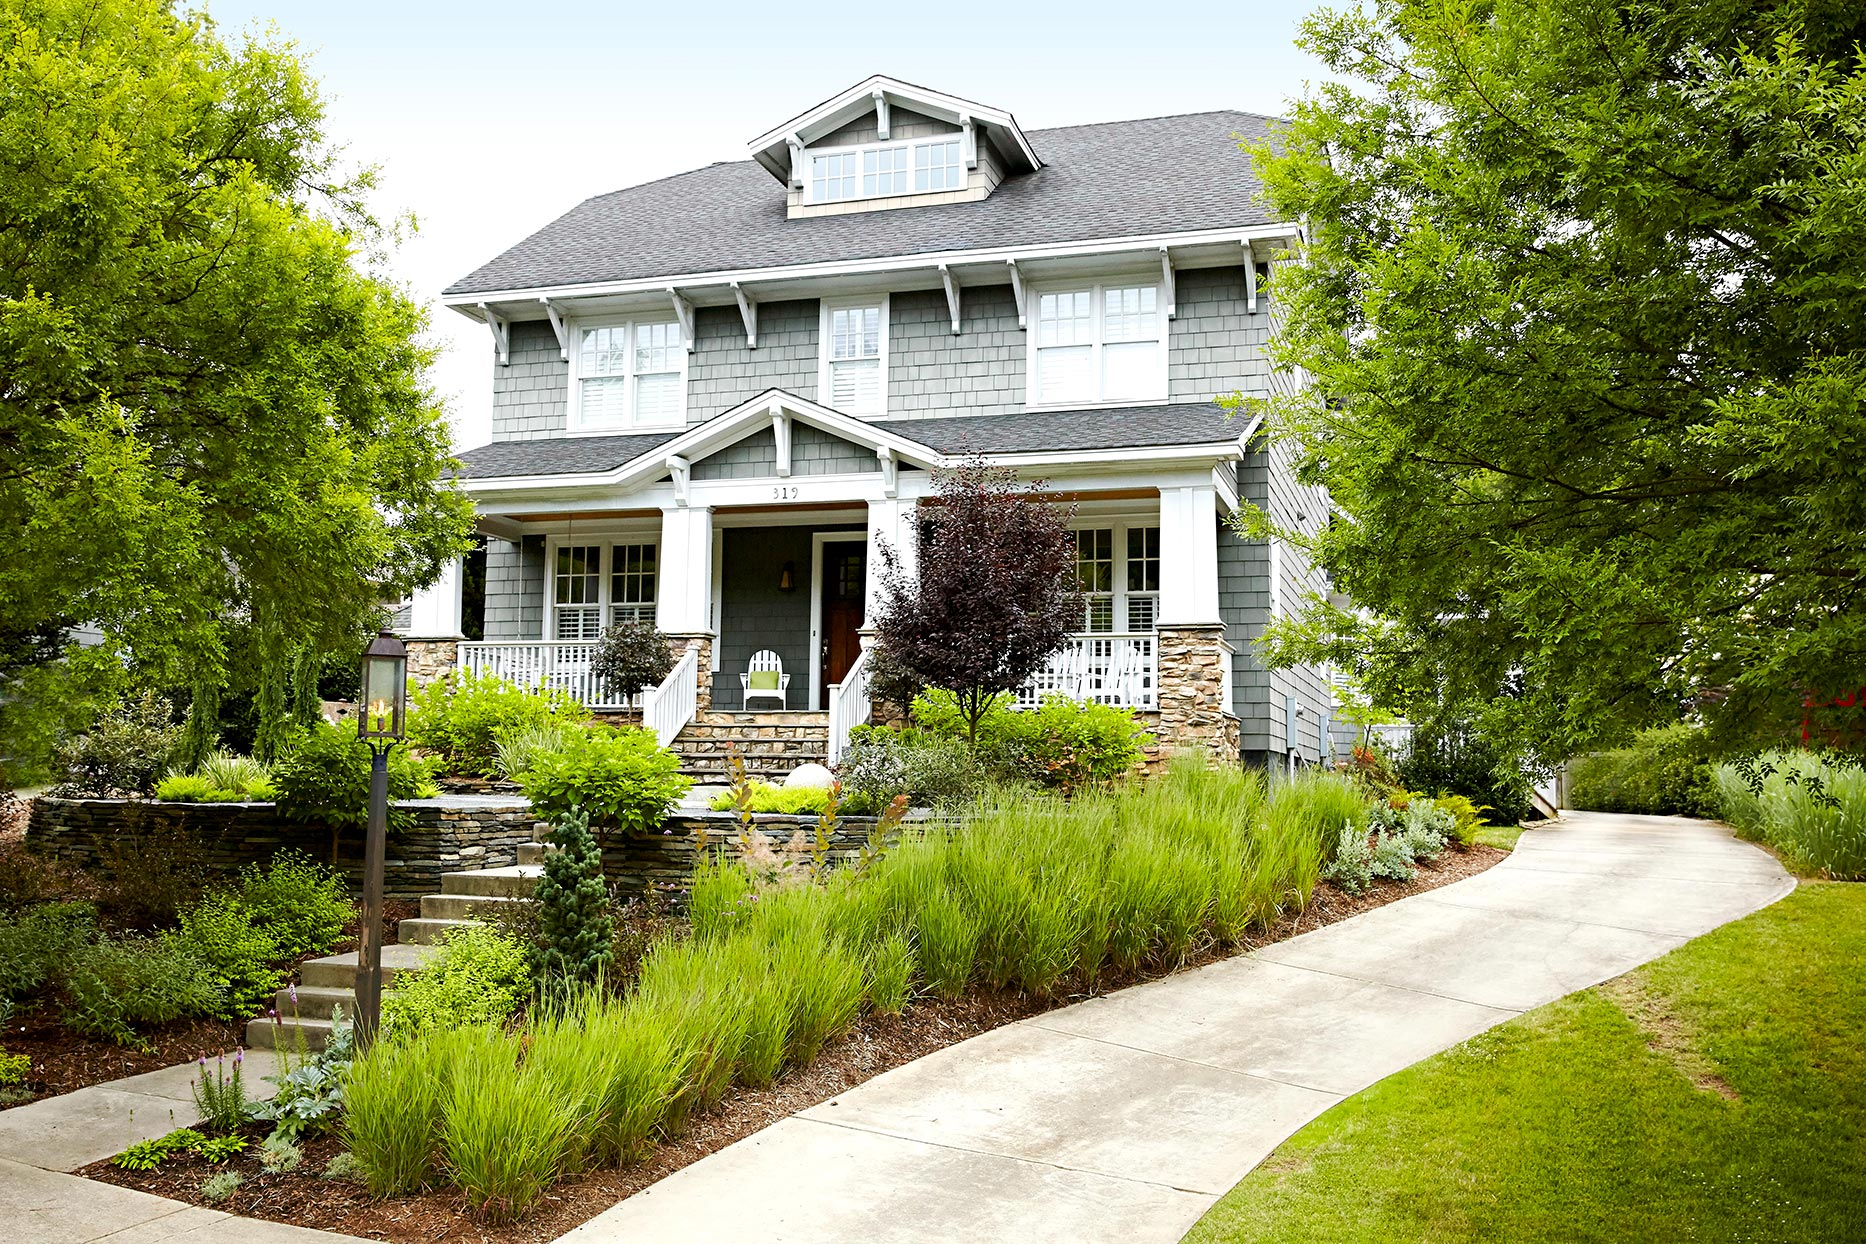 Gray house with garden front yard